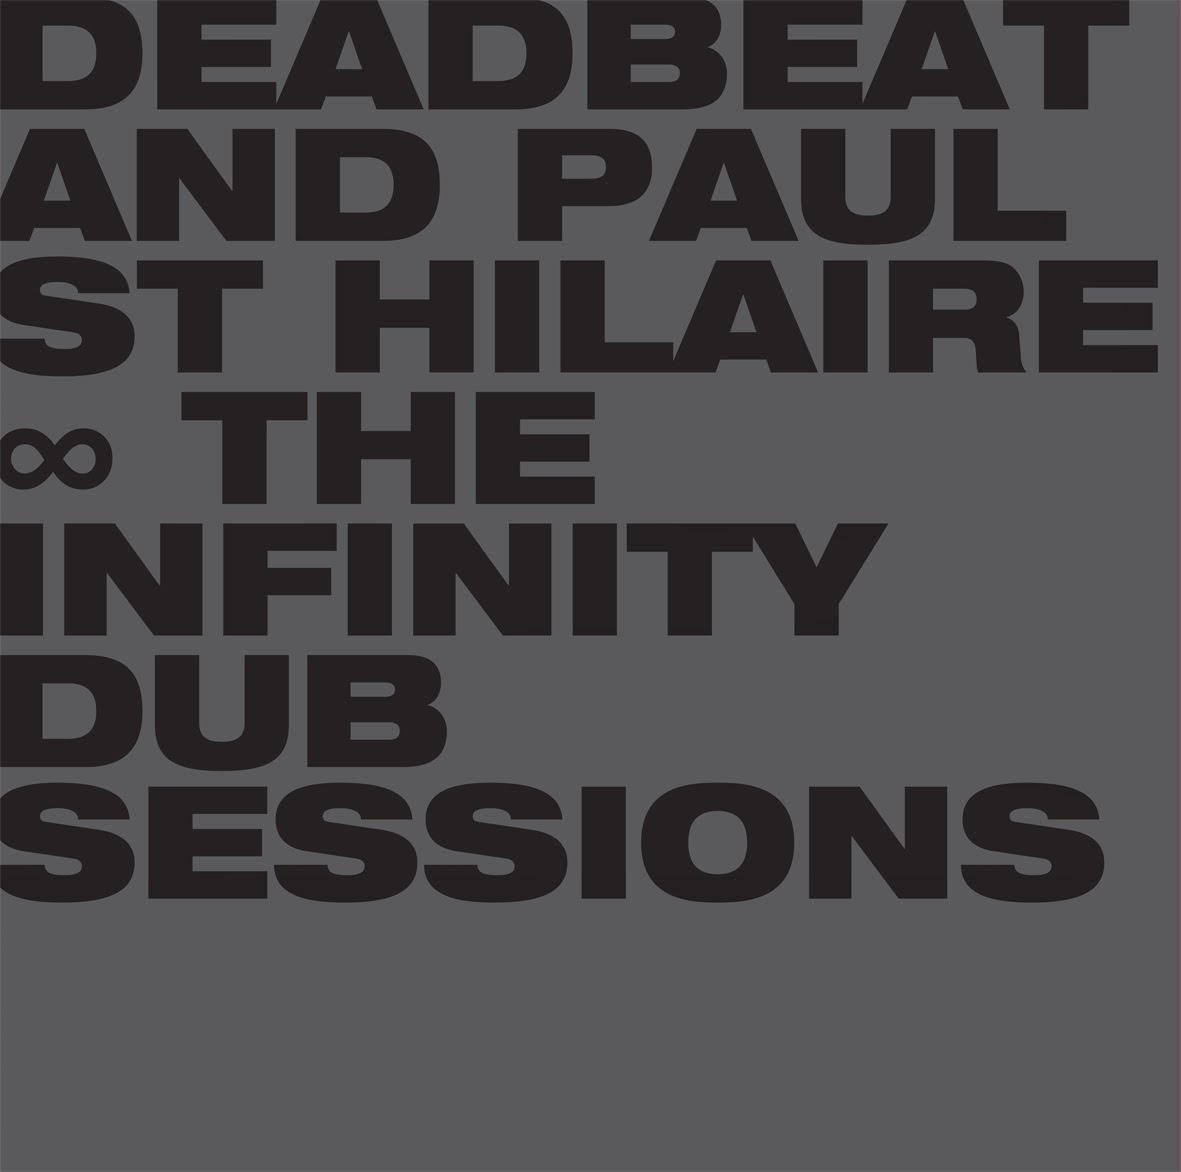 discosafari - DEADBEAT and PAUL ST HILAIRE - The Infinity Dub Sessions - BLKRTZ